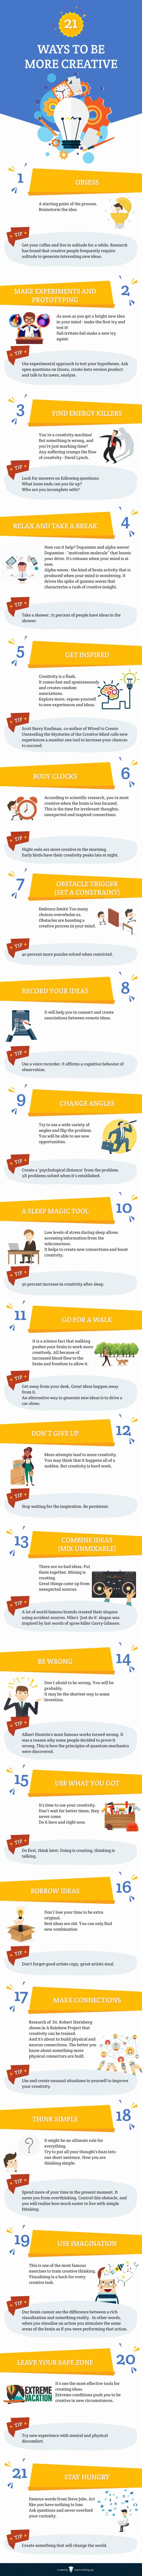 Tips to be more creative – infographic   World Creativity and Innovation Week April 15-21